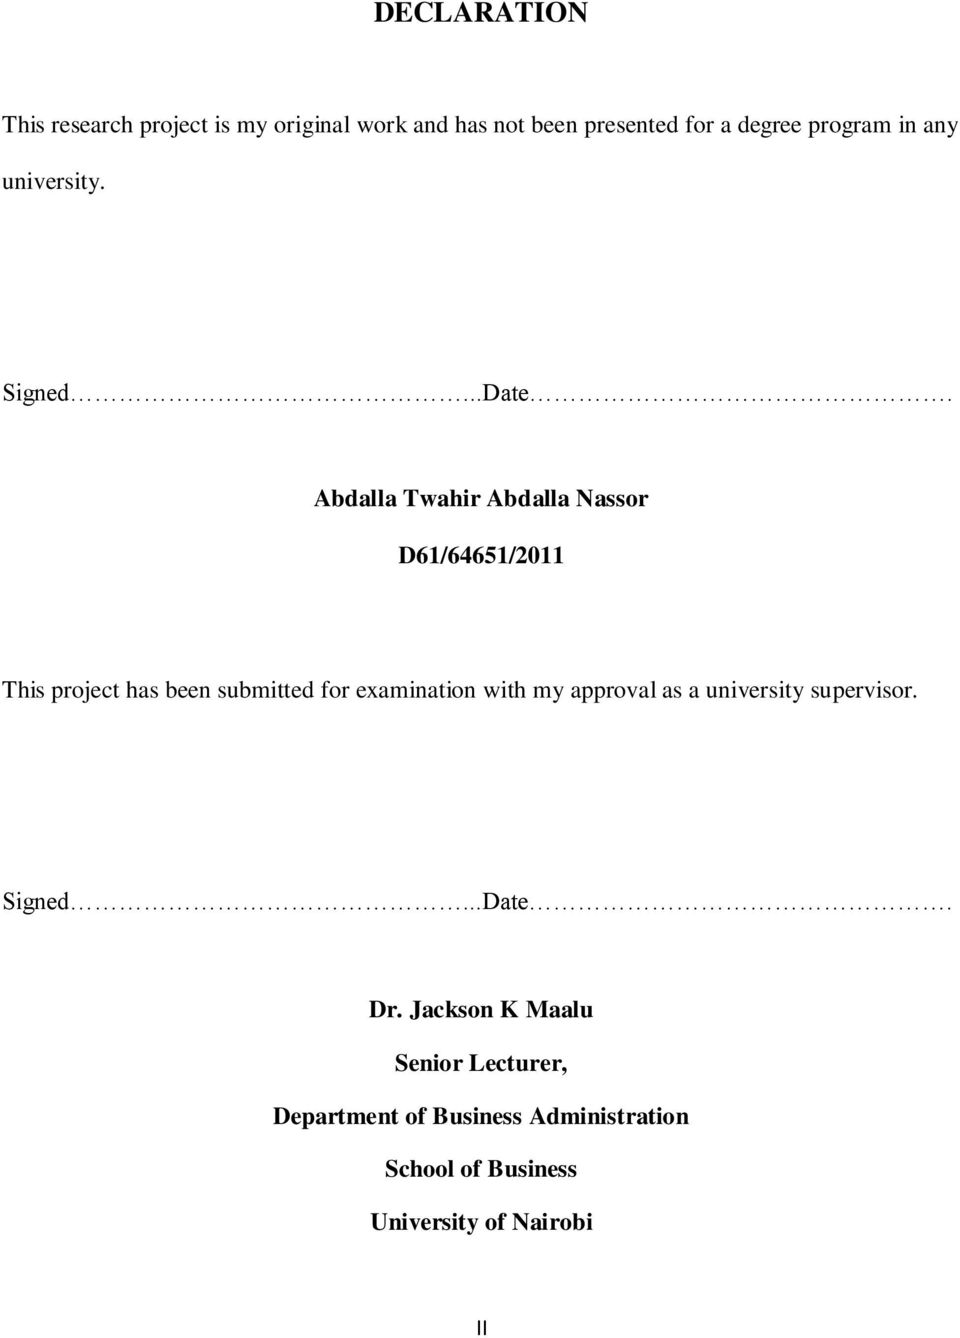 Abdalla Twahir Abdalla Nassor D61/64651/2011 This project has been submitted for examination with my